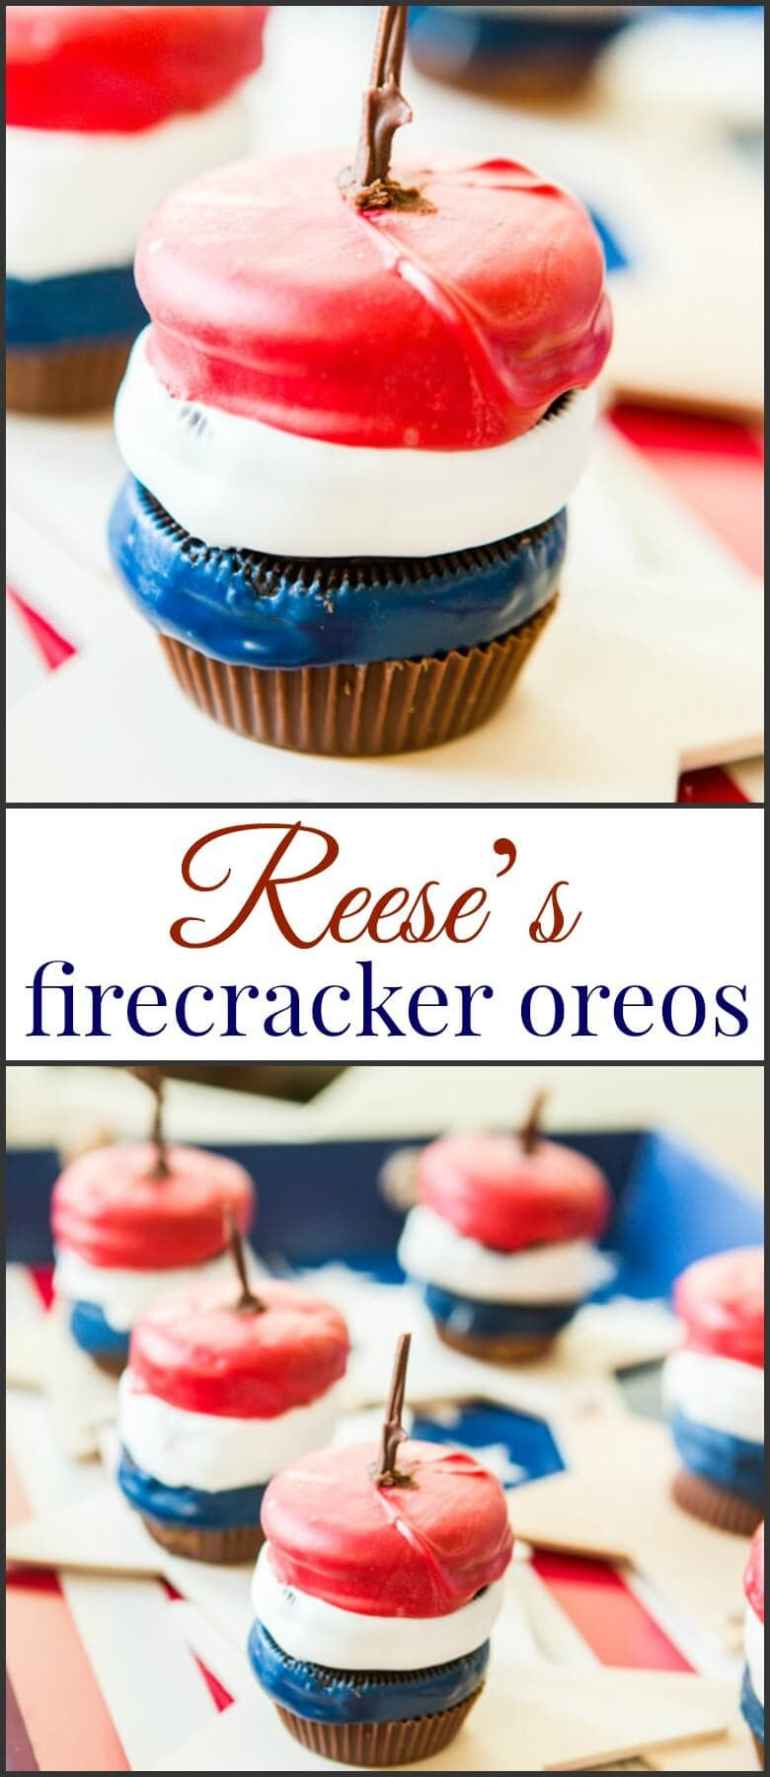 Everyone loves fireworks on the 4th of July, but let's be honest, all I care about are these Reese's Firecracker Oreos! Perfect for potluck dessert ideas!